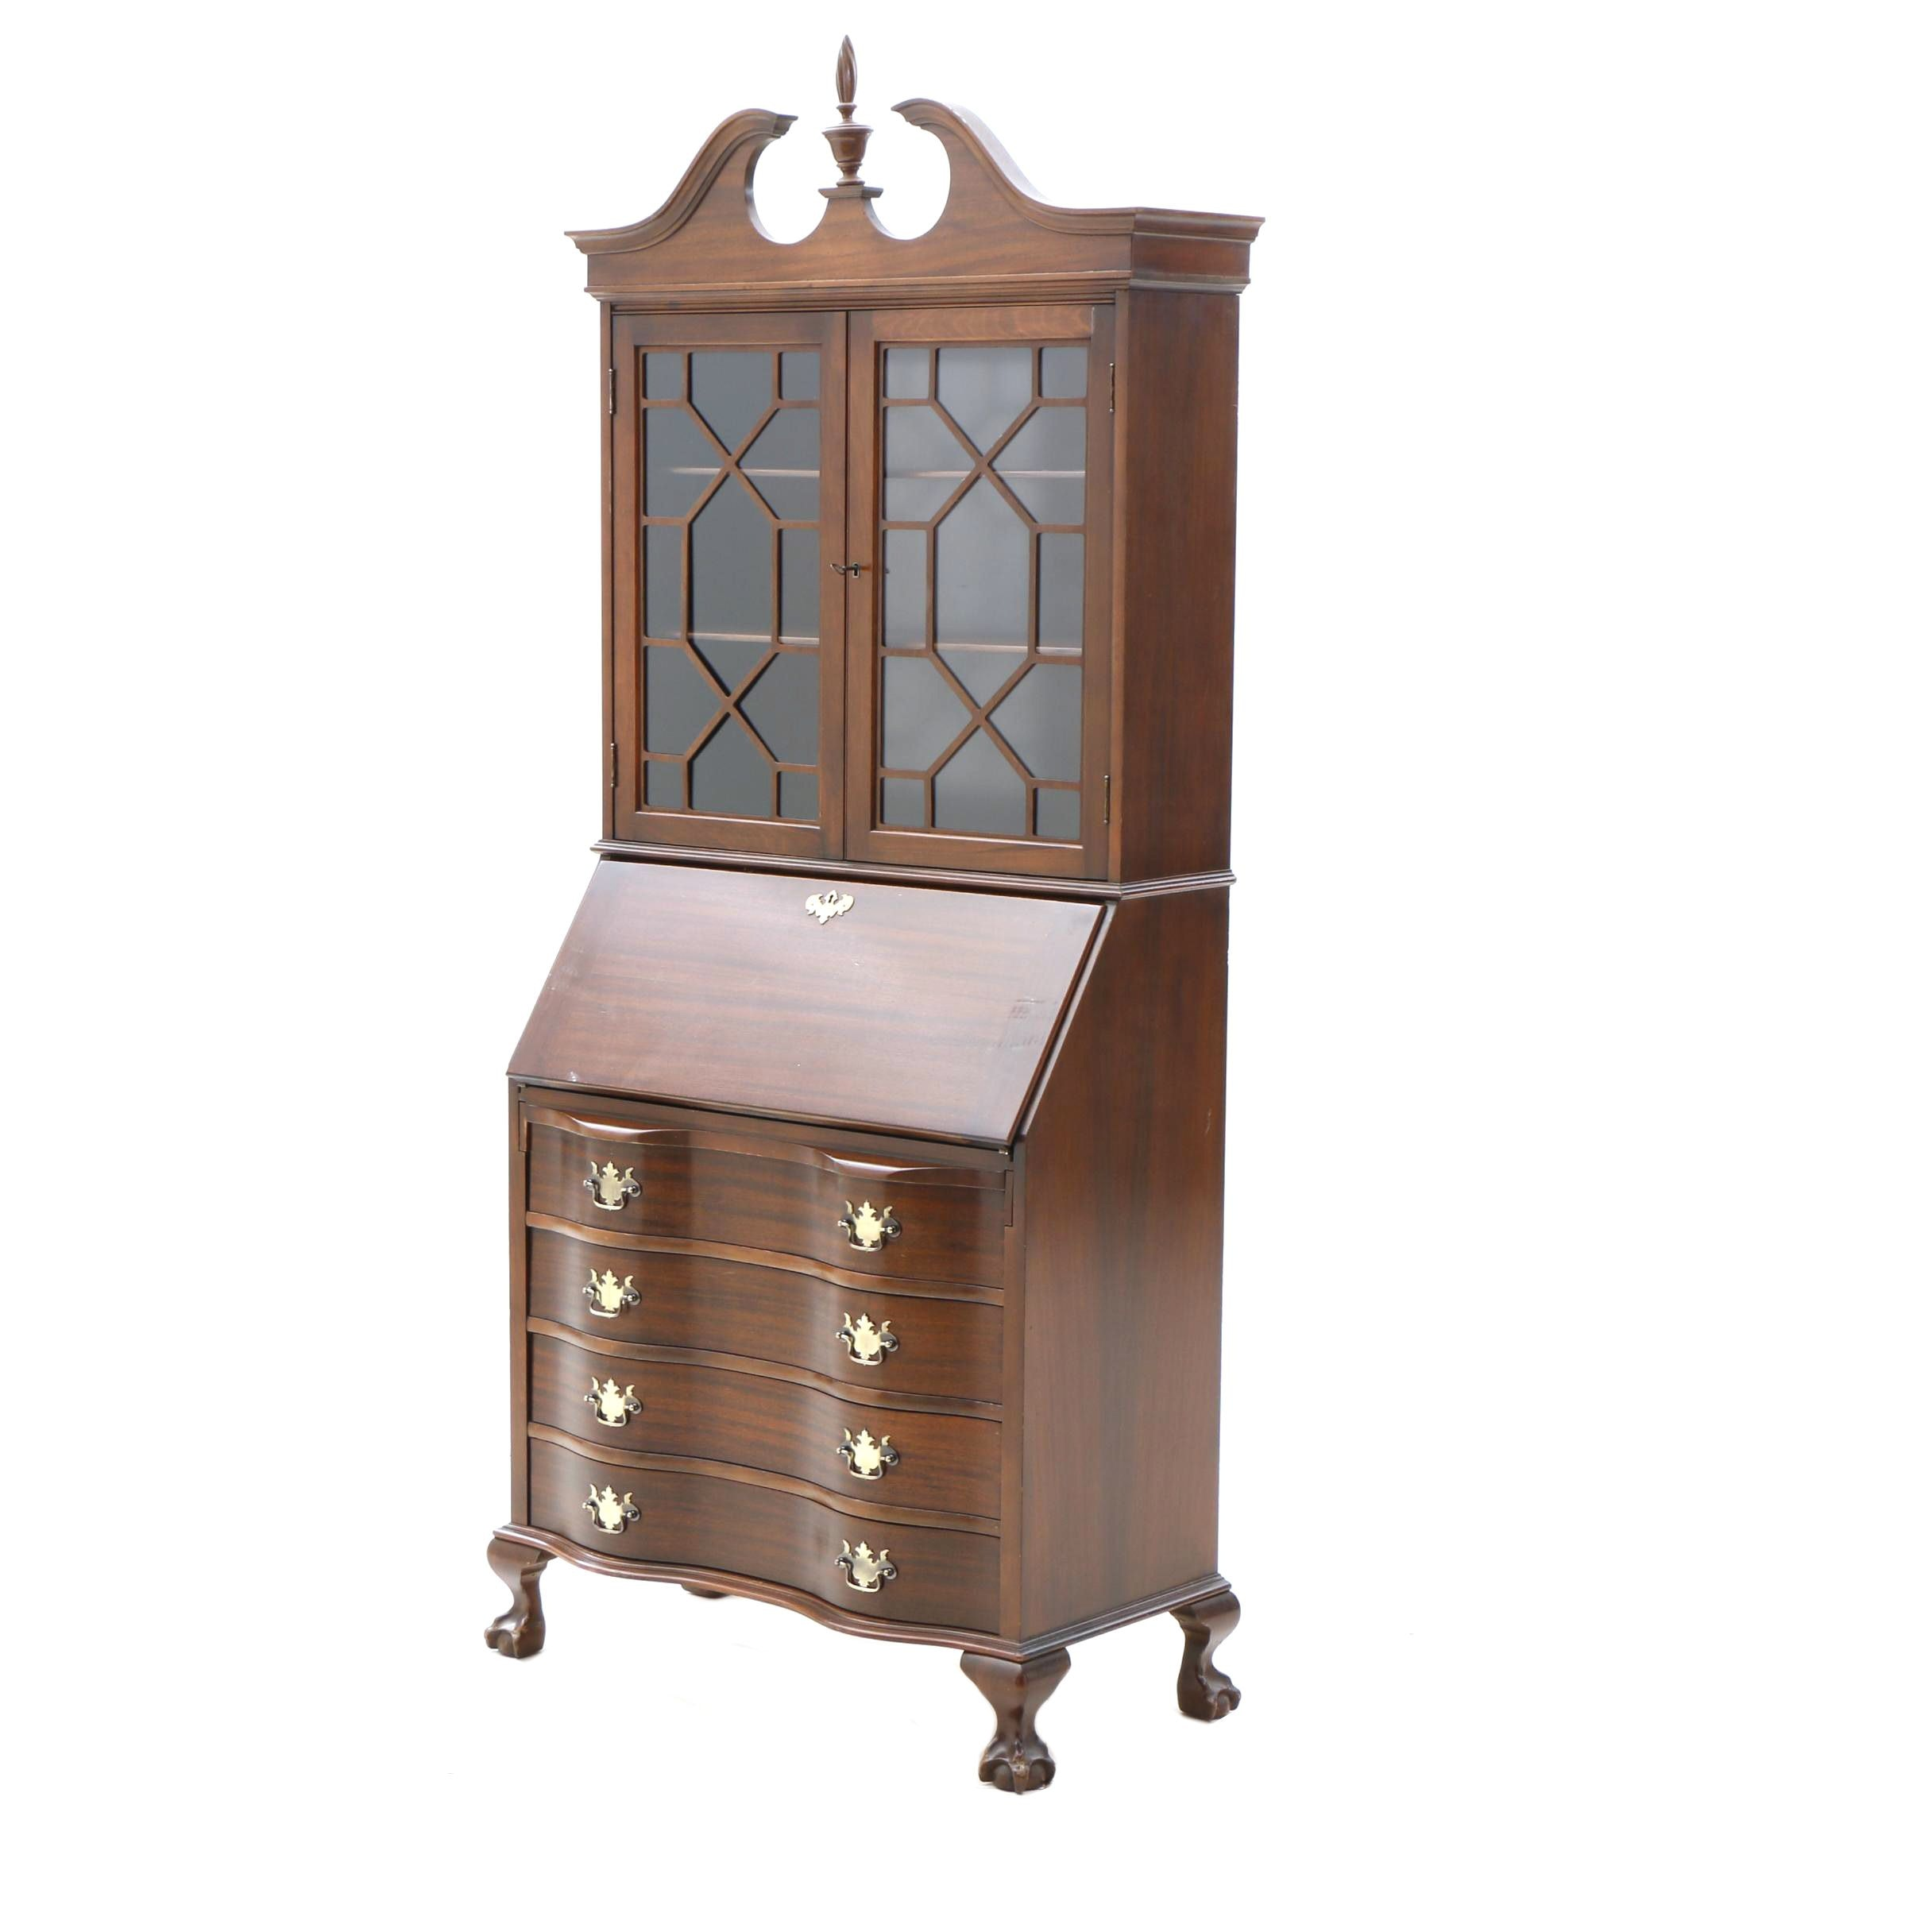 A Chippendale Style Secretary by Maddox Tables